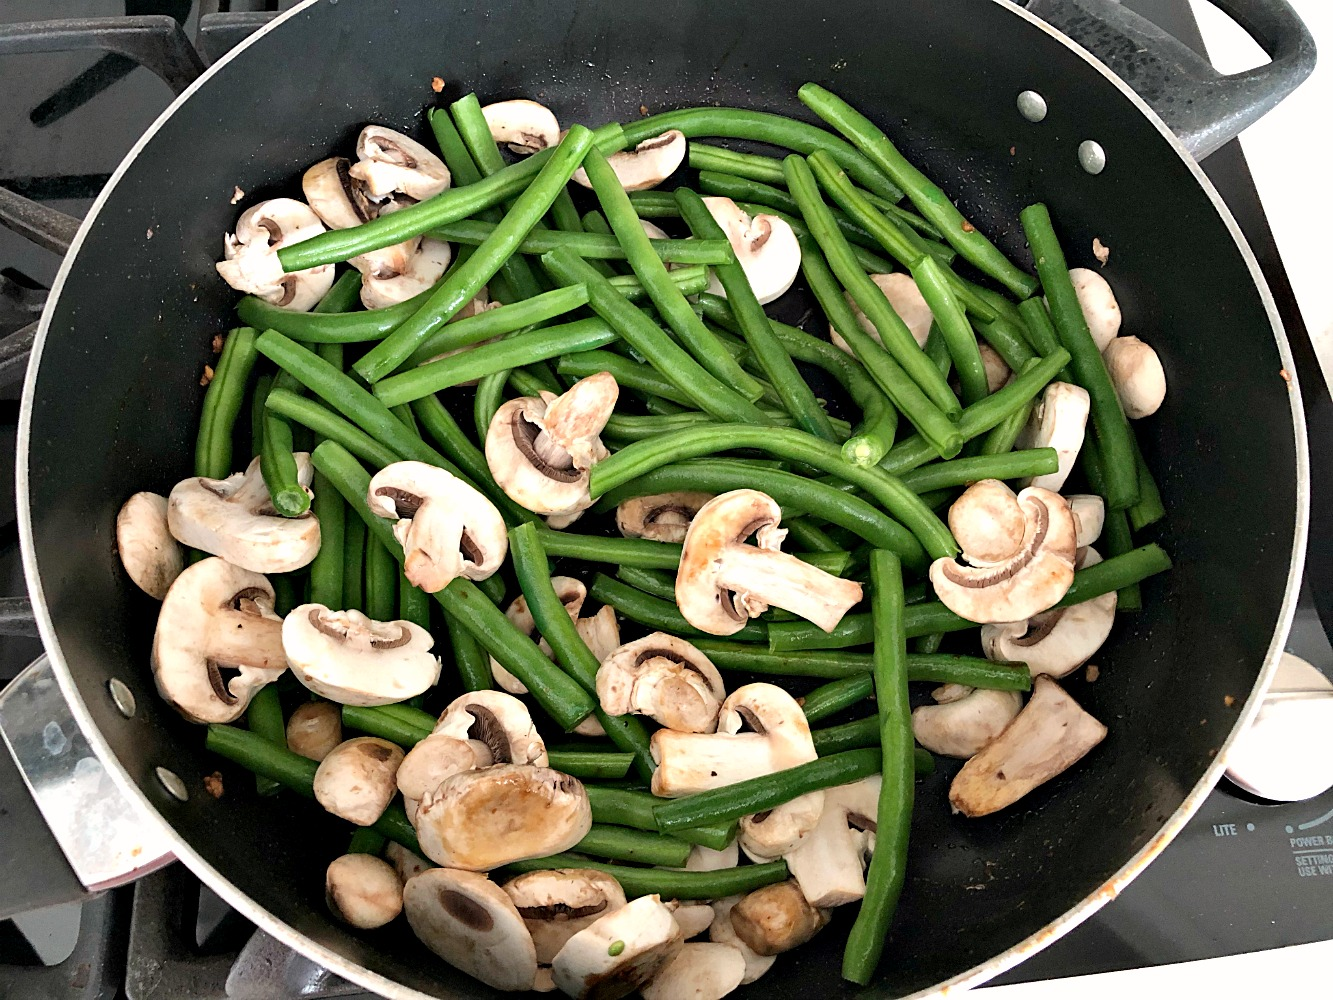 Green beans and mushrooms in a large stir fry pan